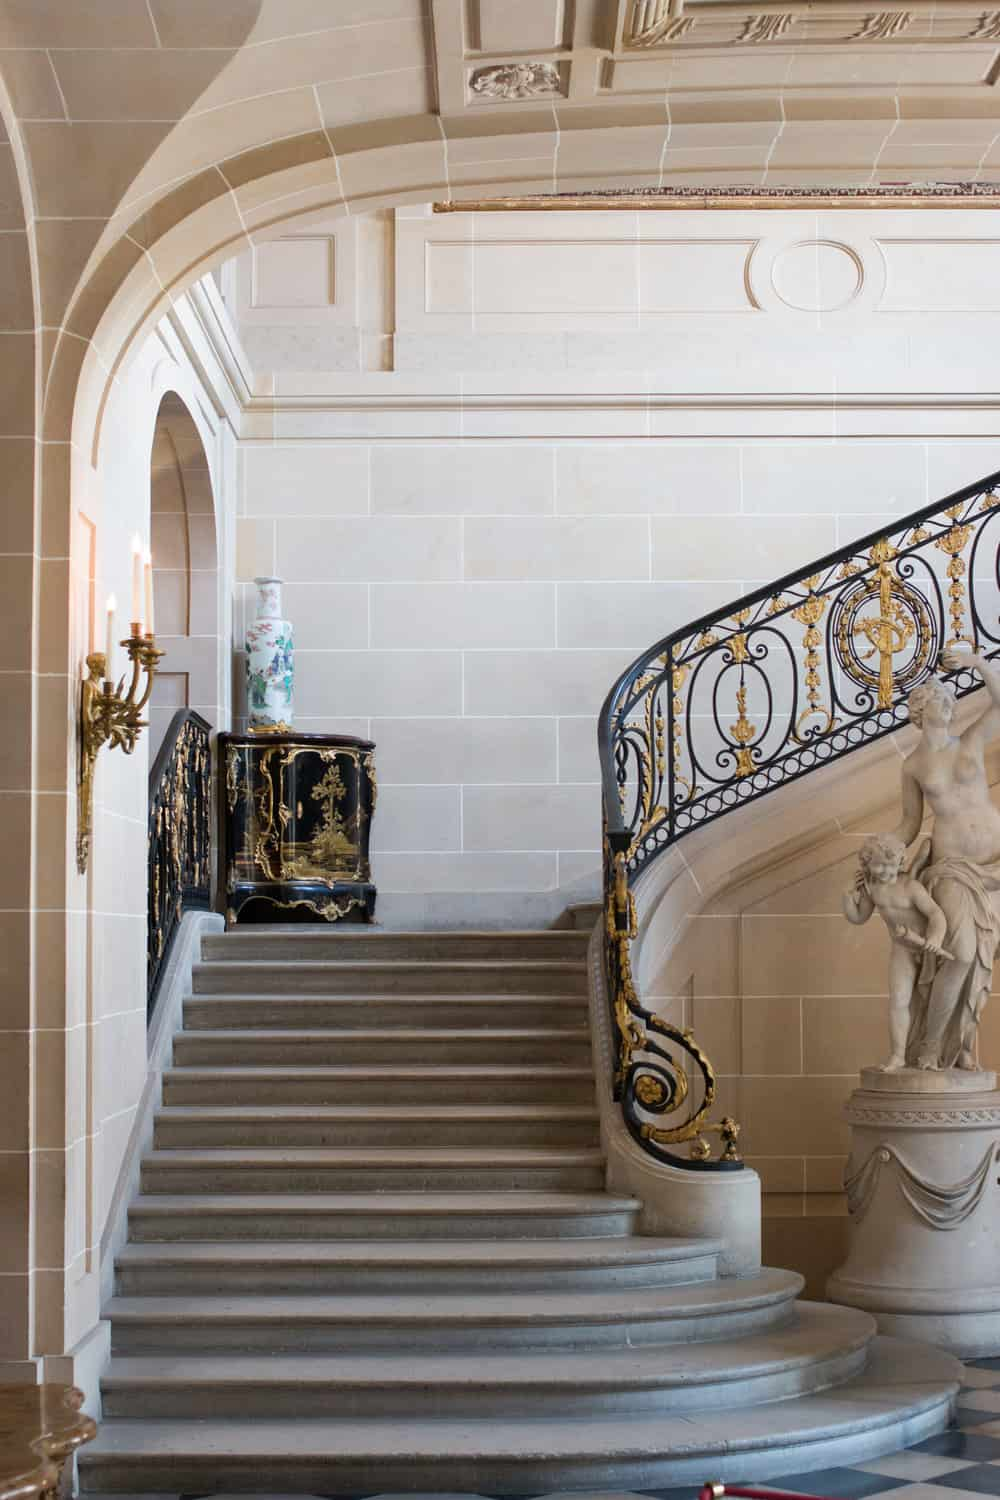 museee nissim de camondo 5 museums to visit in Paris that aren't the louvre